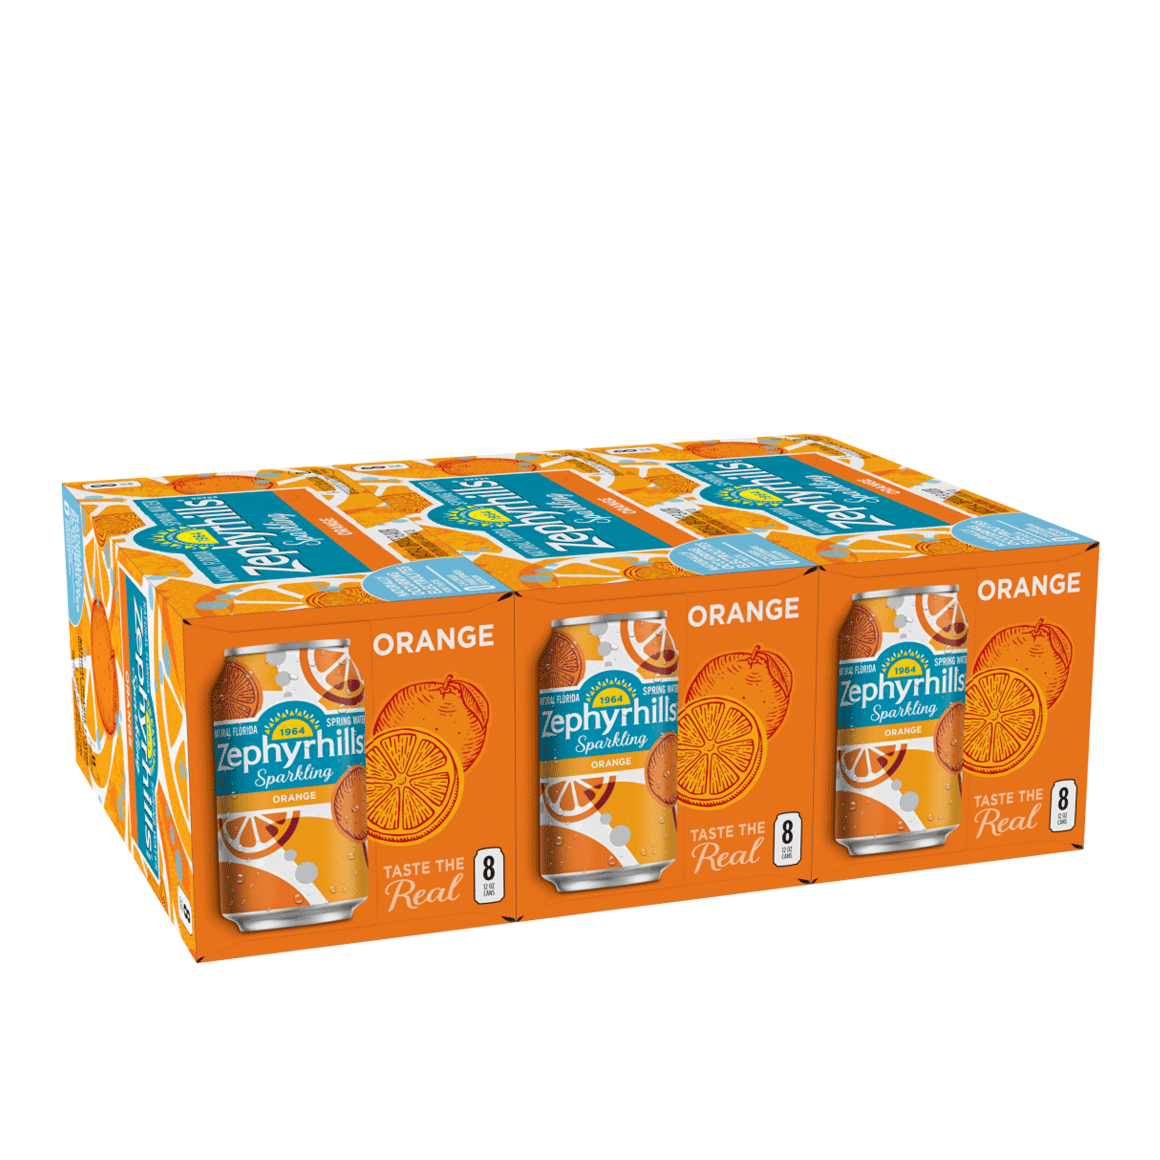 Zephyrhills® Orange Sparkling Water Image1